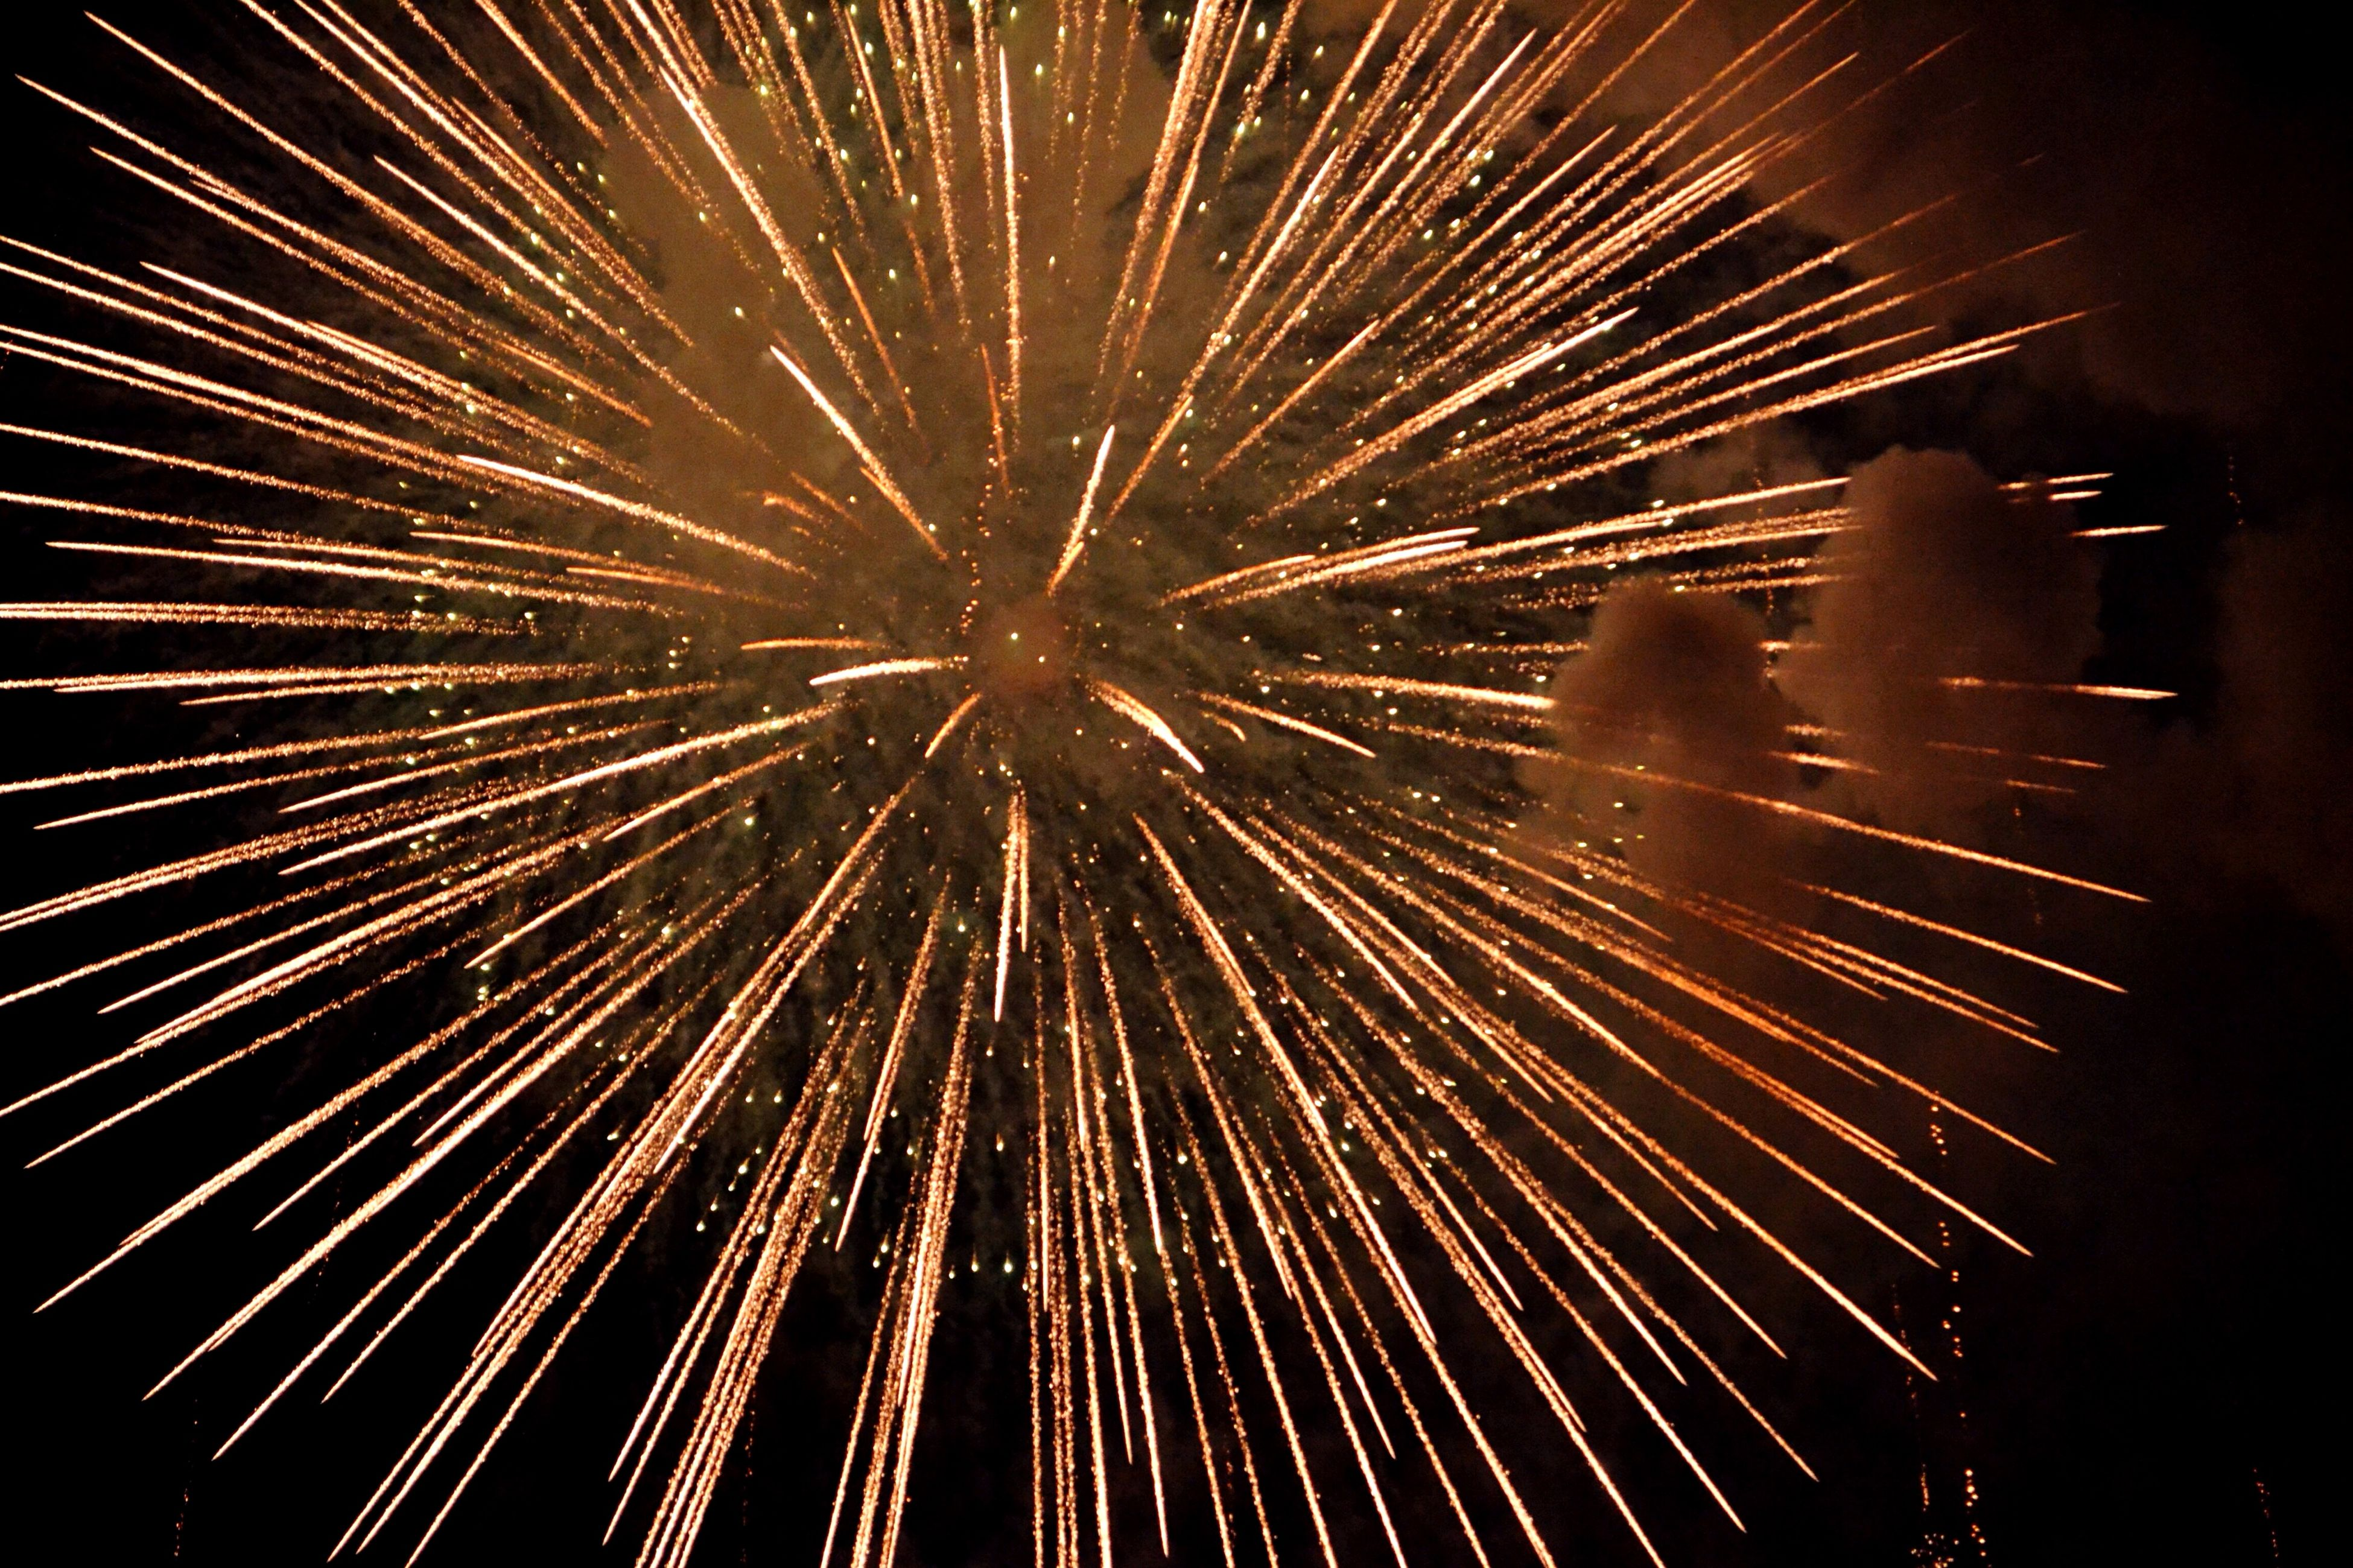 night, illuminated, firework display, celebration, exploding, arts culture and entertainment, long exposure, firework - man made object, event, motion, glowing, sparks, firework, low angle view, blurred motion, entertainment, celebration event, smoke - physical structure, fire - natural phenomenon, sky